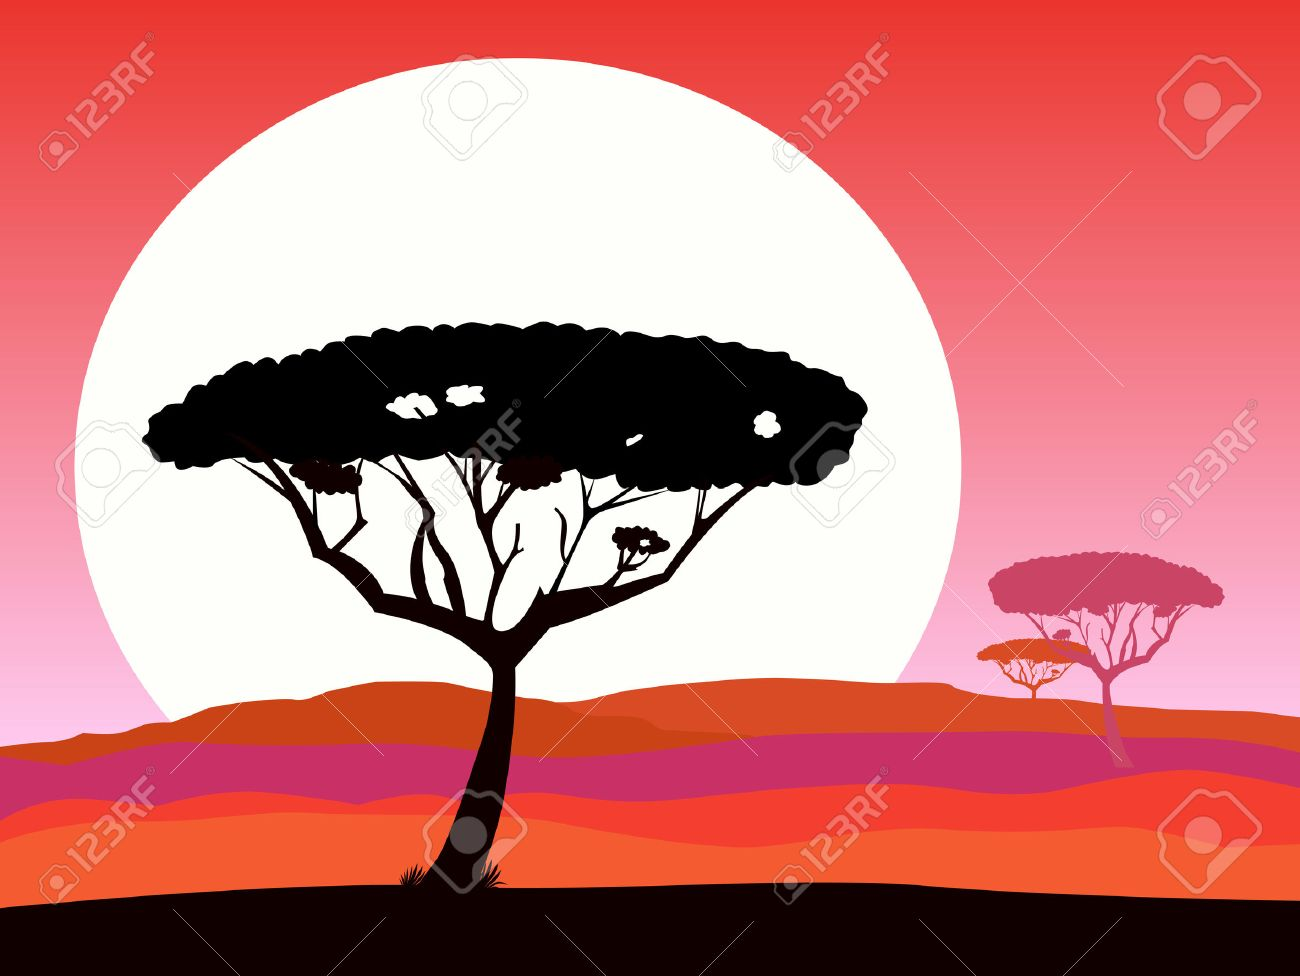 African safari background with red sunset and tree silhouette. Dark red safari background landscape. Vector Illustration. Beautiful sunset scene with acacia trees silhouette, hills and sunset. - 7095430